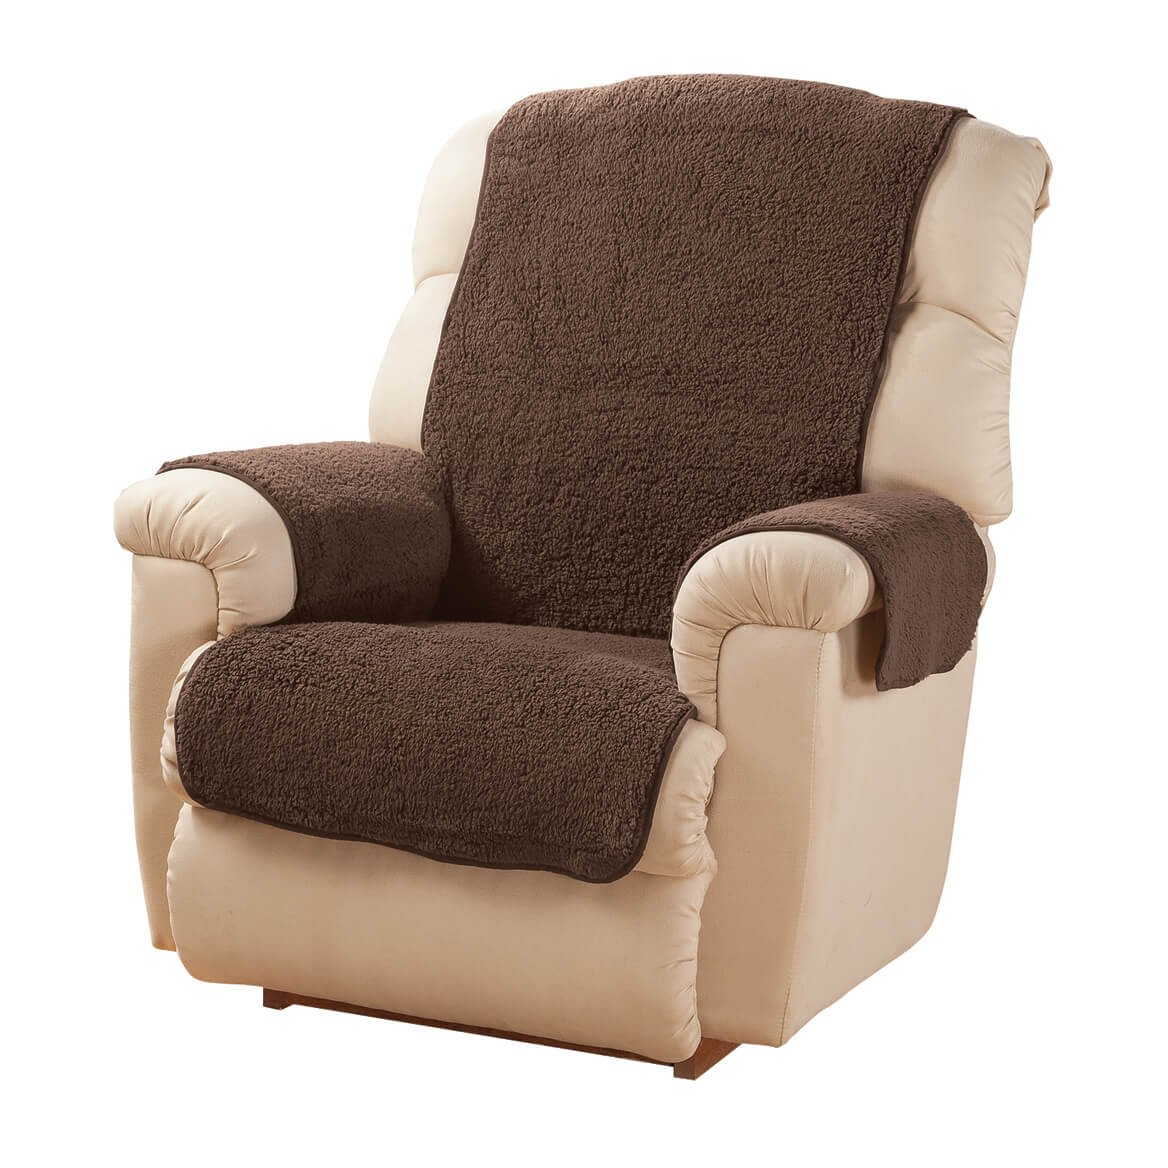 Sherpa Recliner Protector by OakRidgeTM, Chocolate 340461